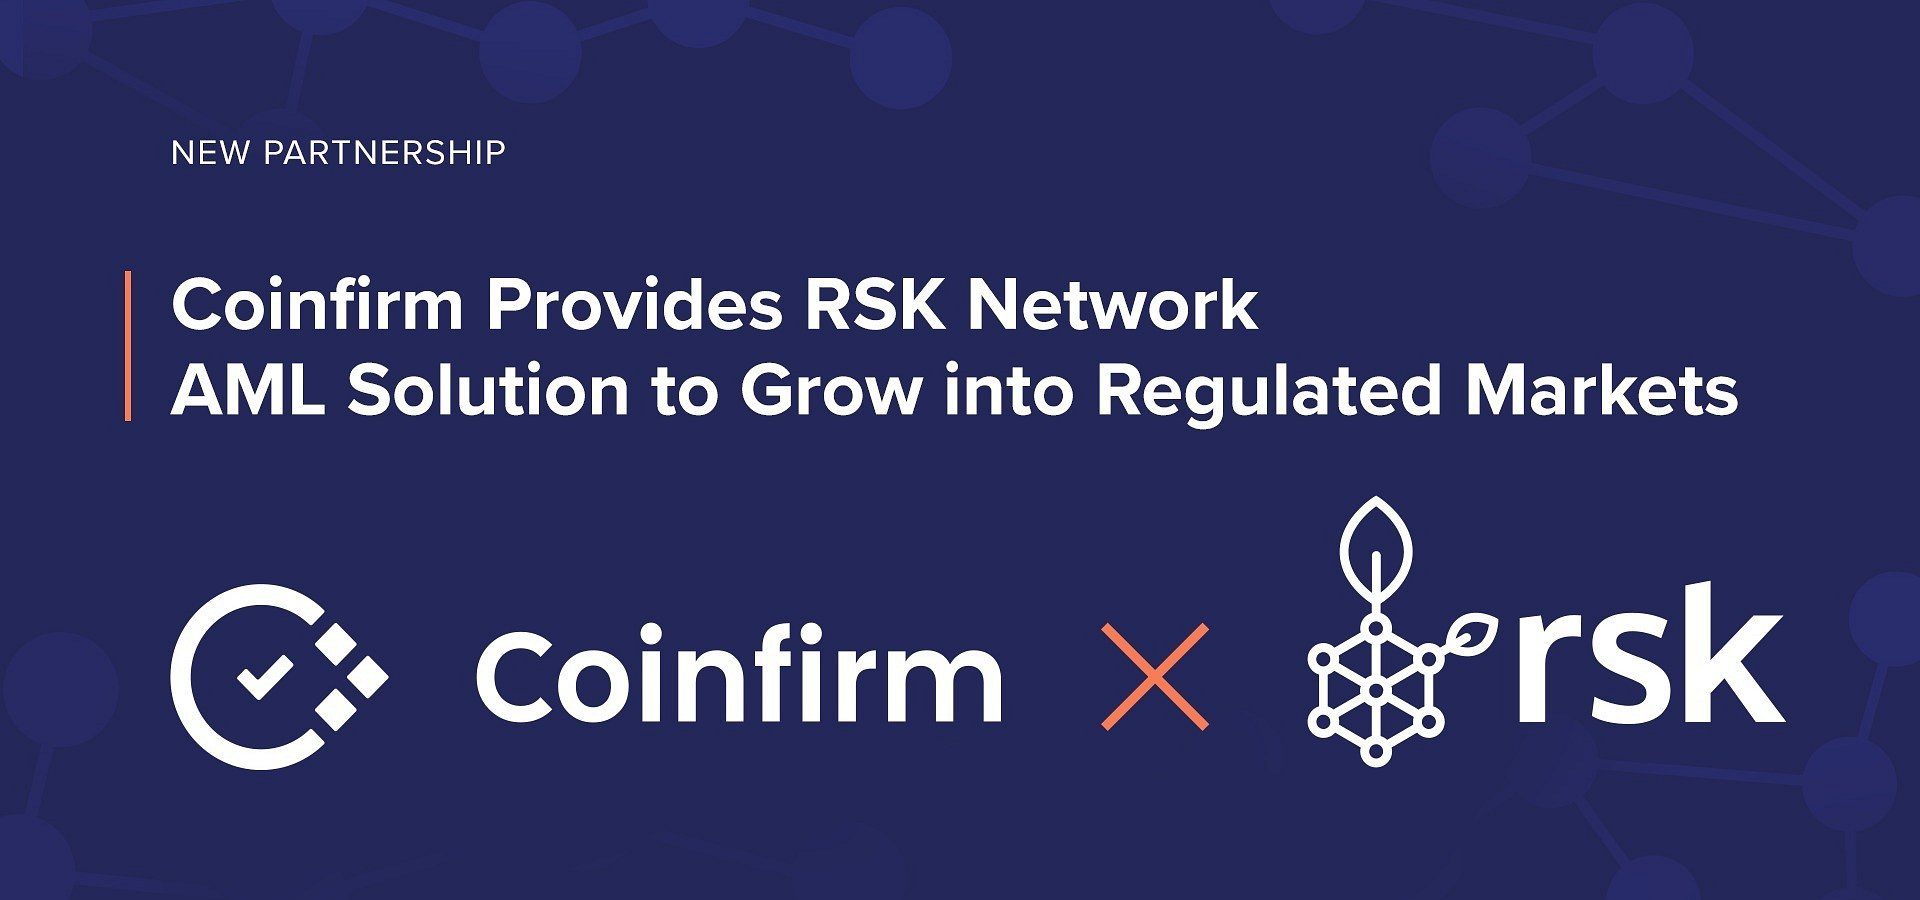 Coinfirm Provides RSK and RIF platforms an AML Solution to Grow into Regulated Markets